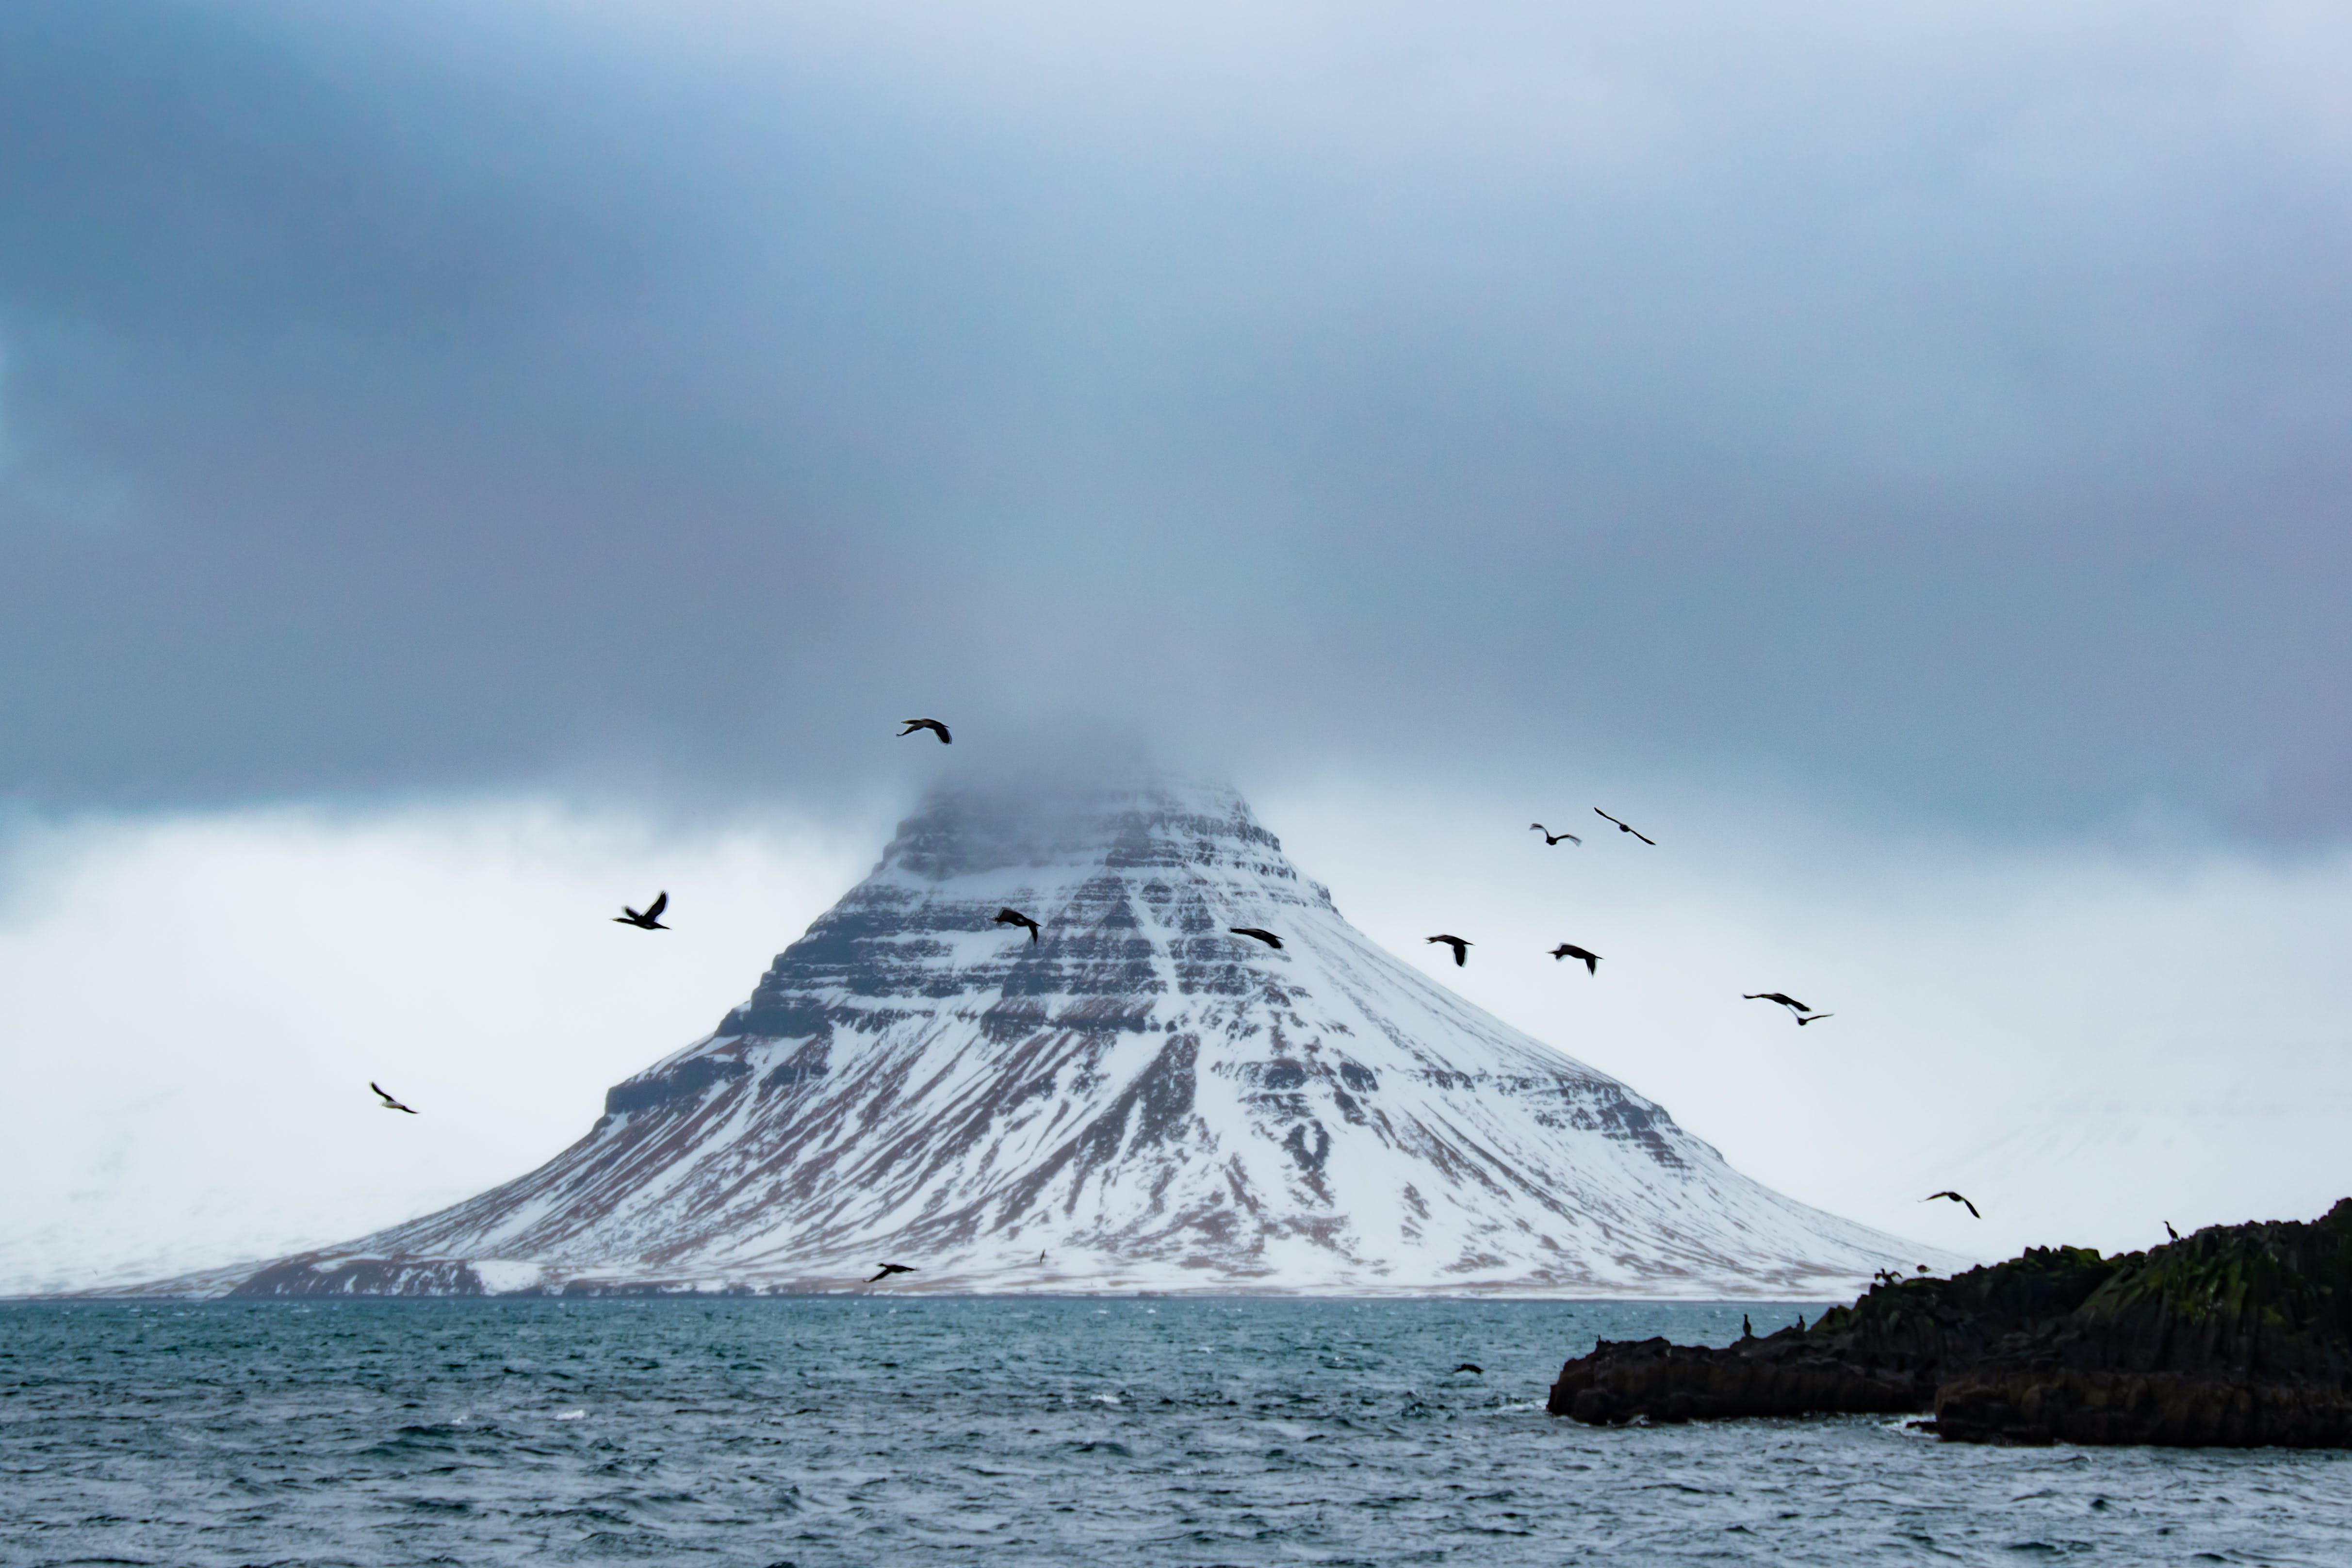 Birds on Air Near Snow Covered Mountain Surrounded With Water